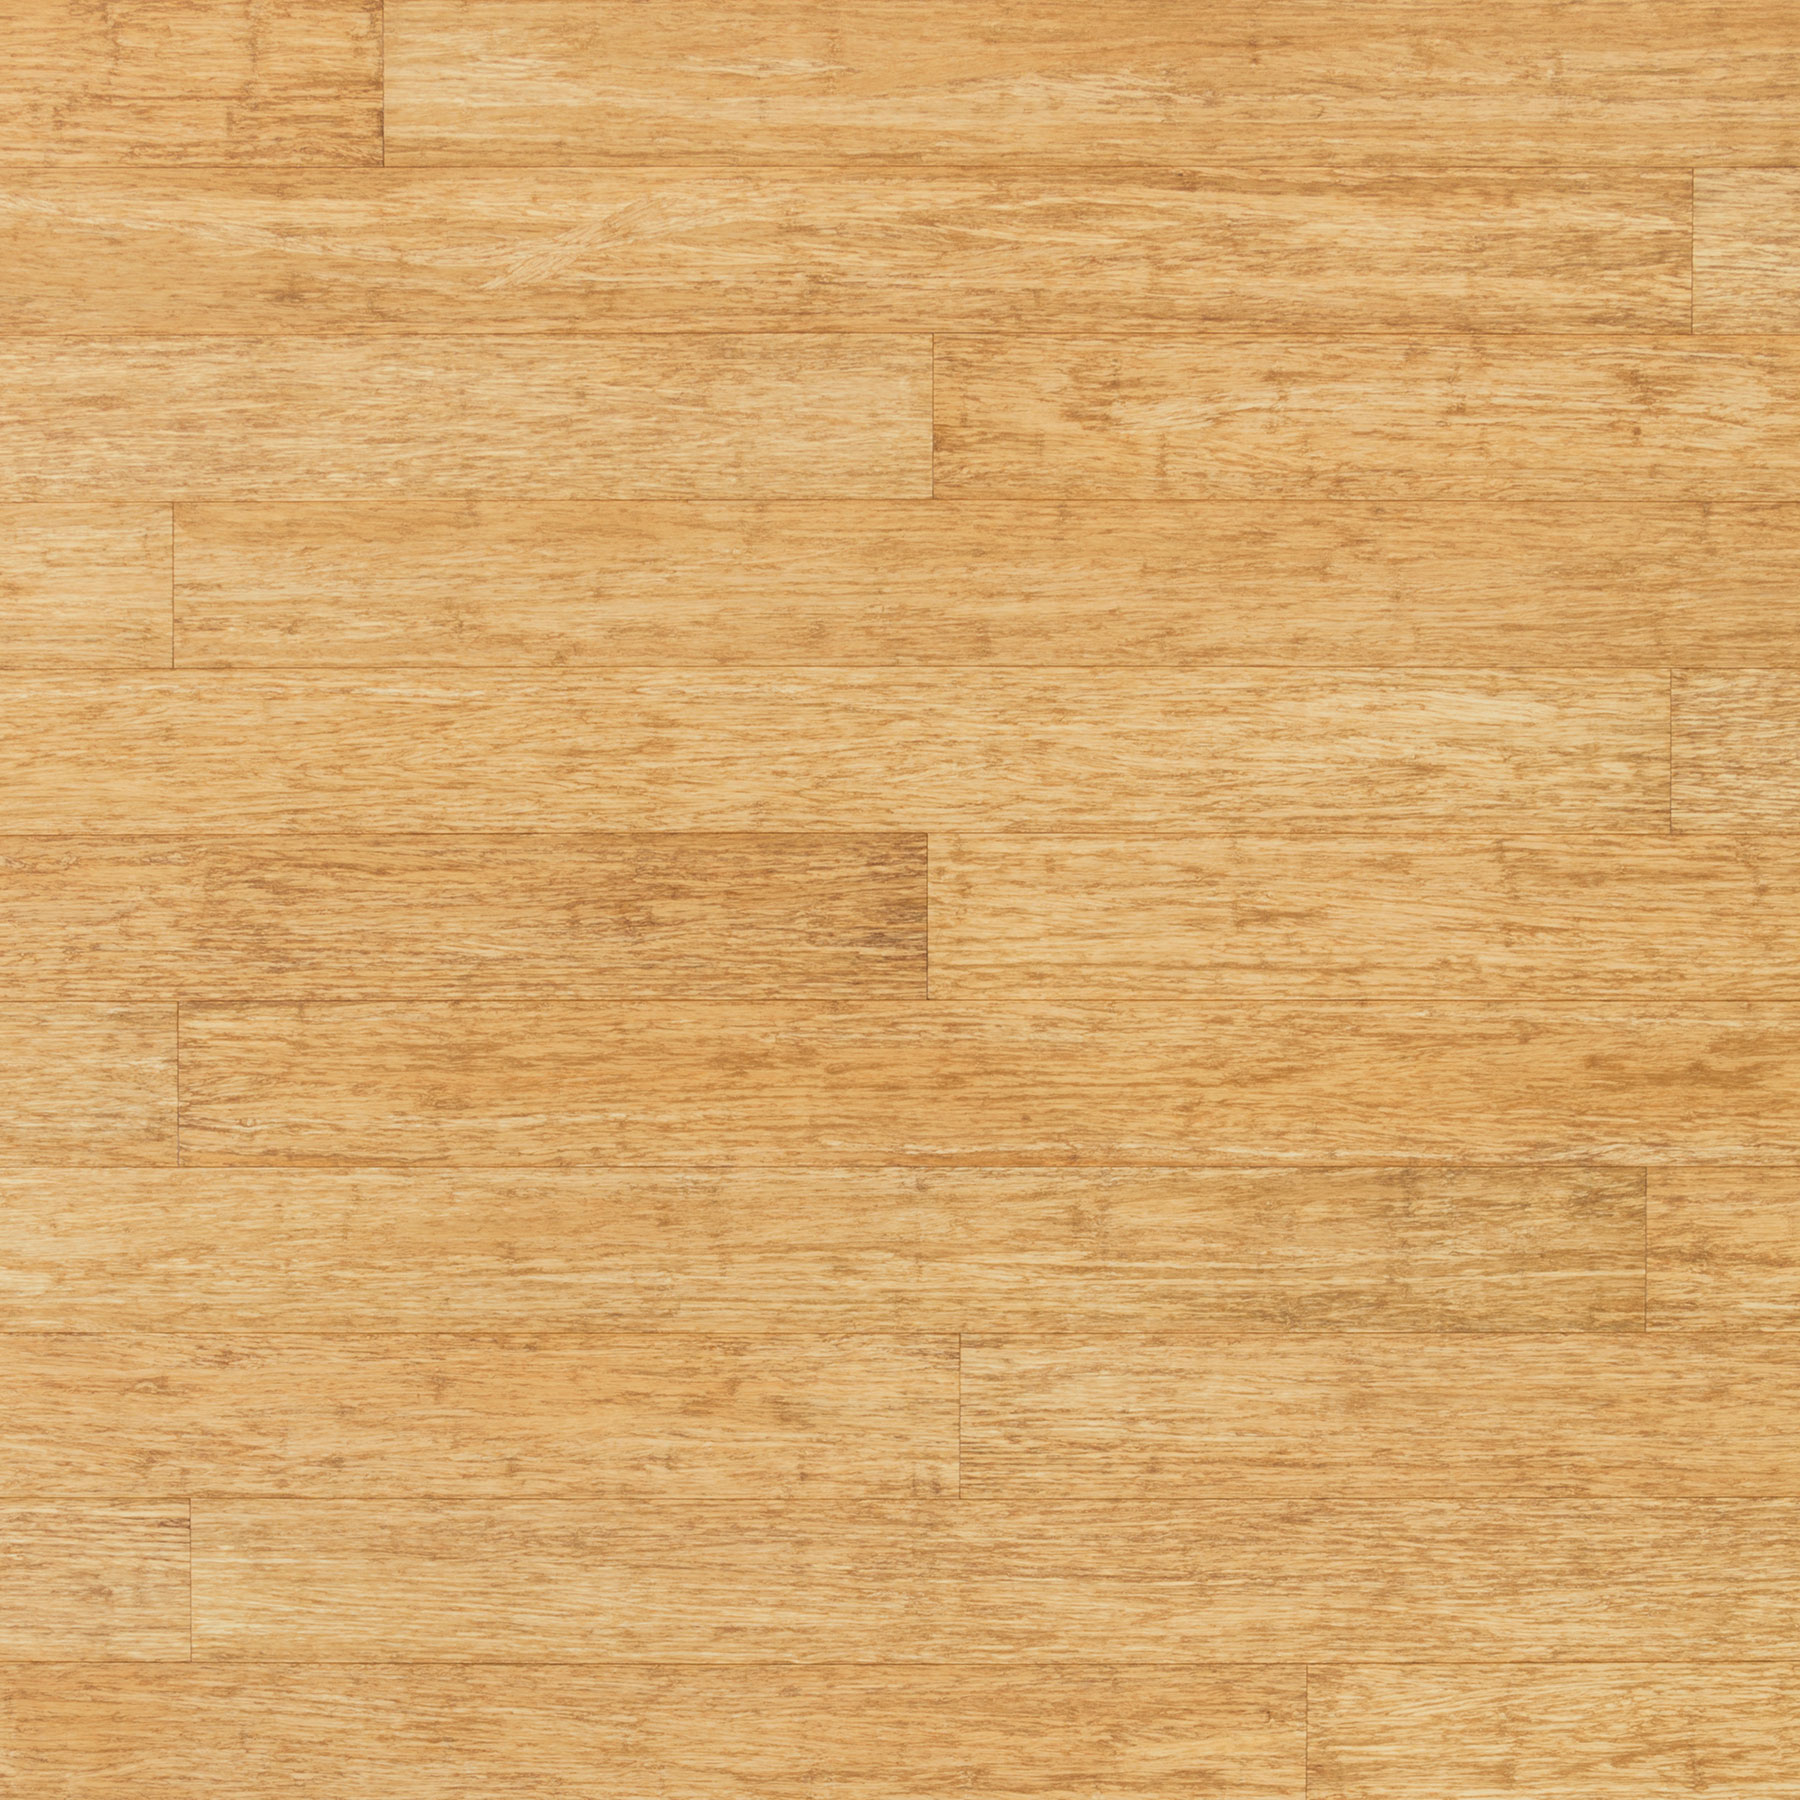 Tesoro Woods - Super Strand Bamboo By Moso Bamboo Products Collection,